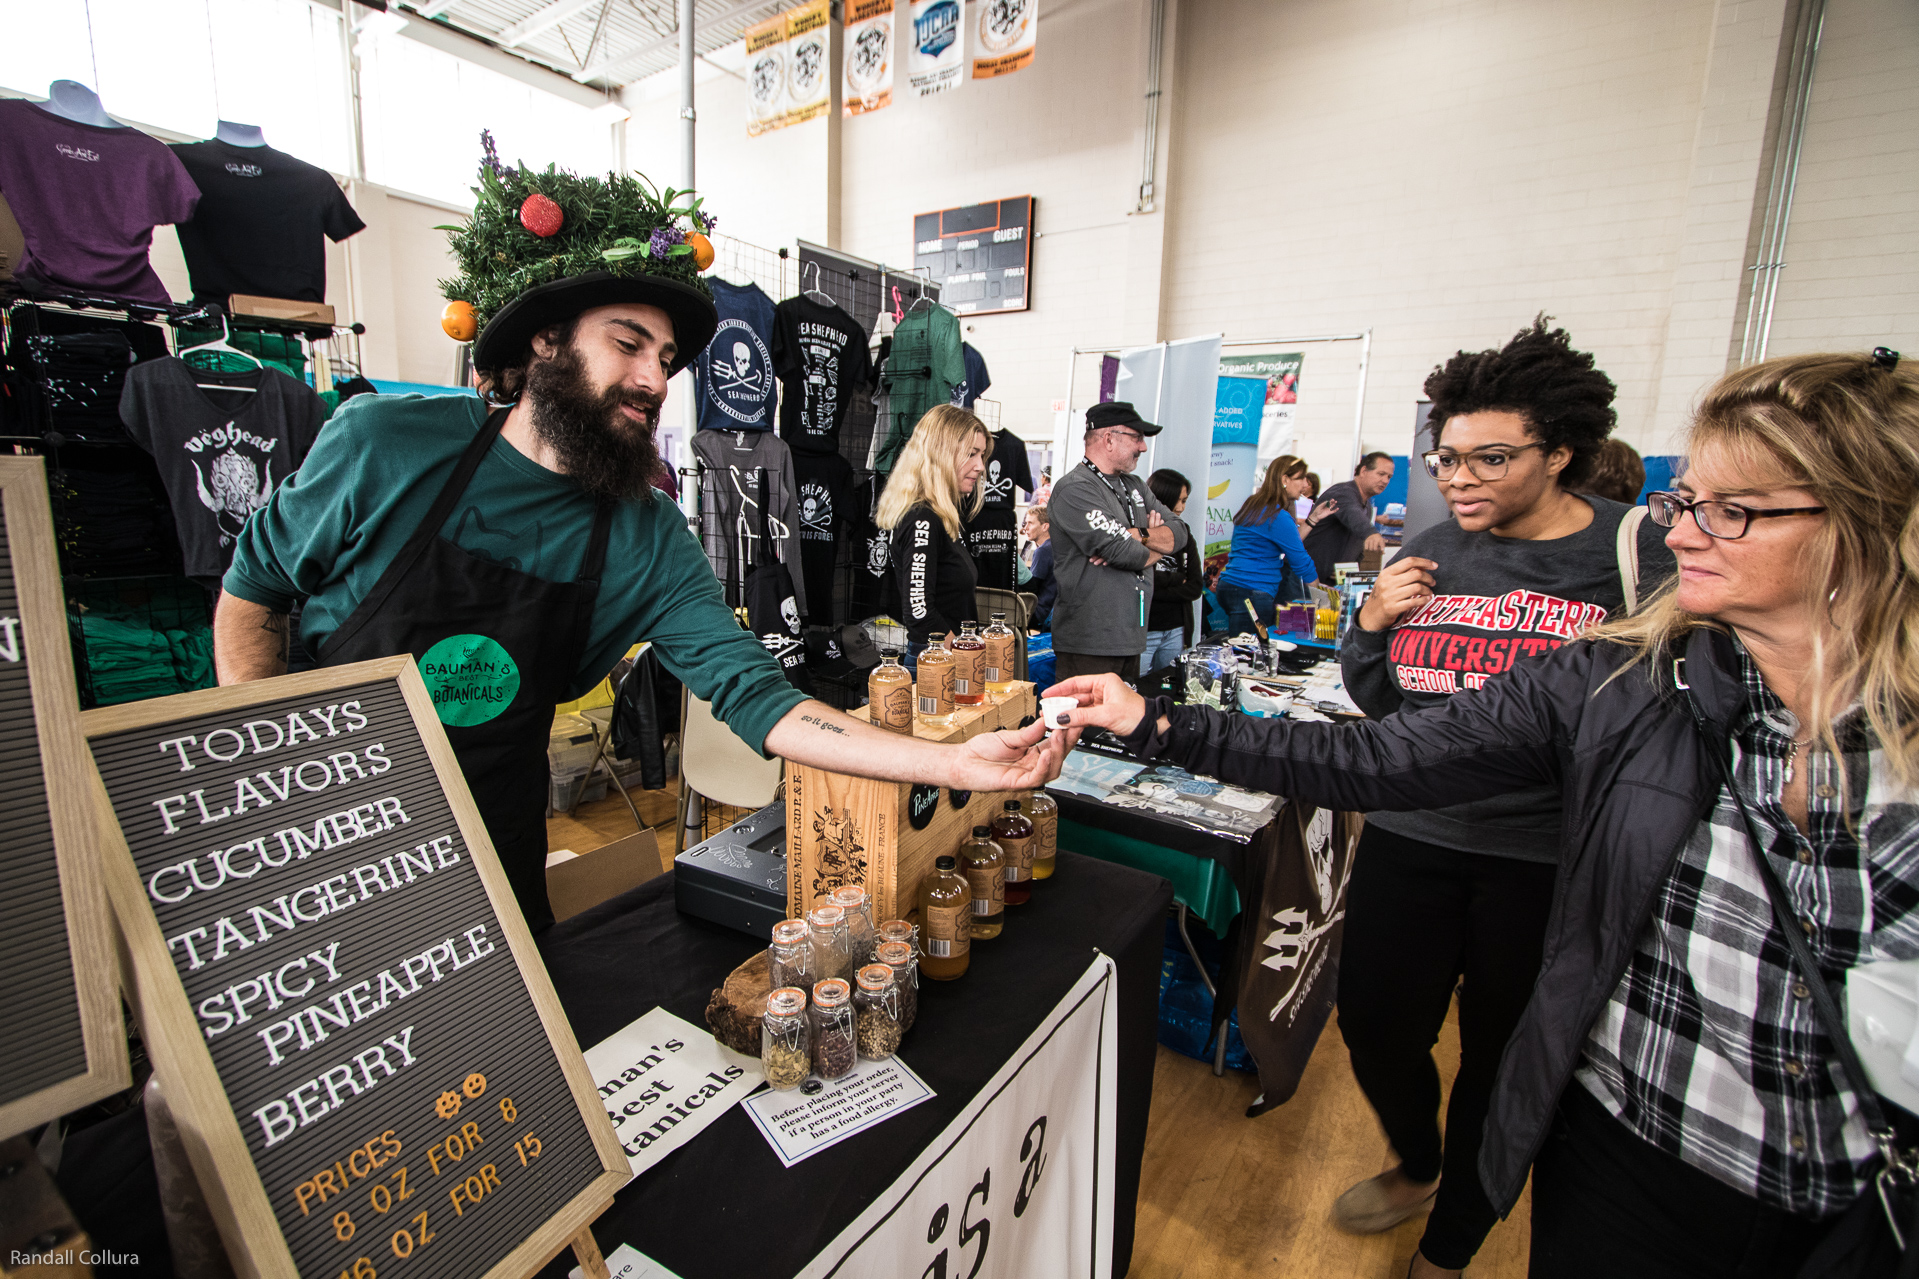 Man wearing a fun hat with costume veggies on it serves a food sample to a woman